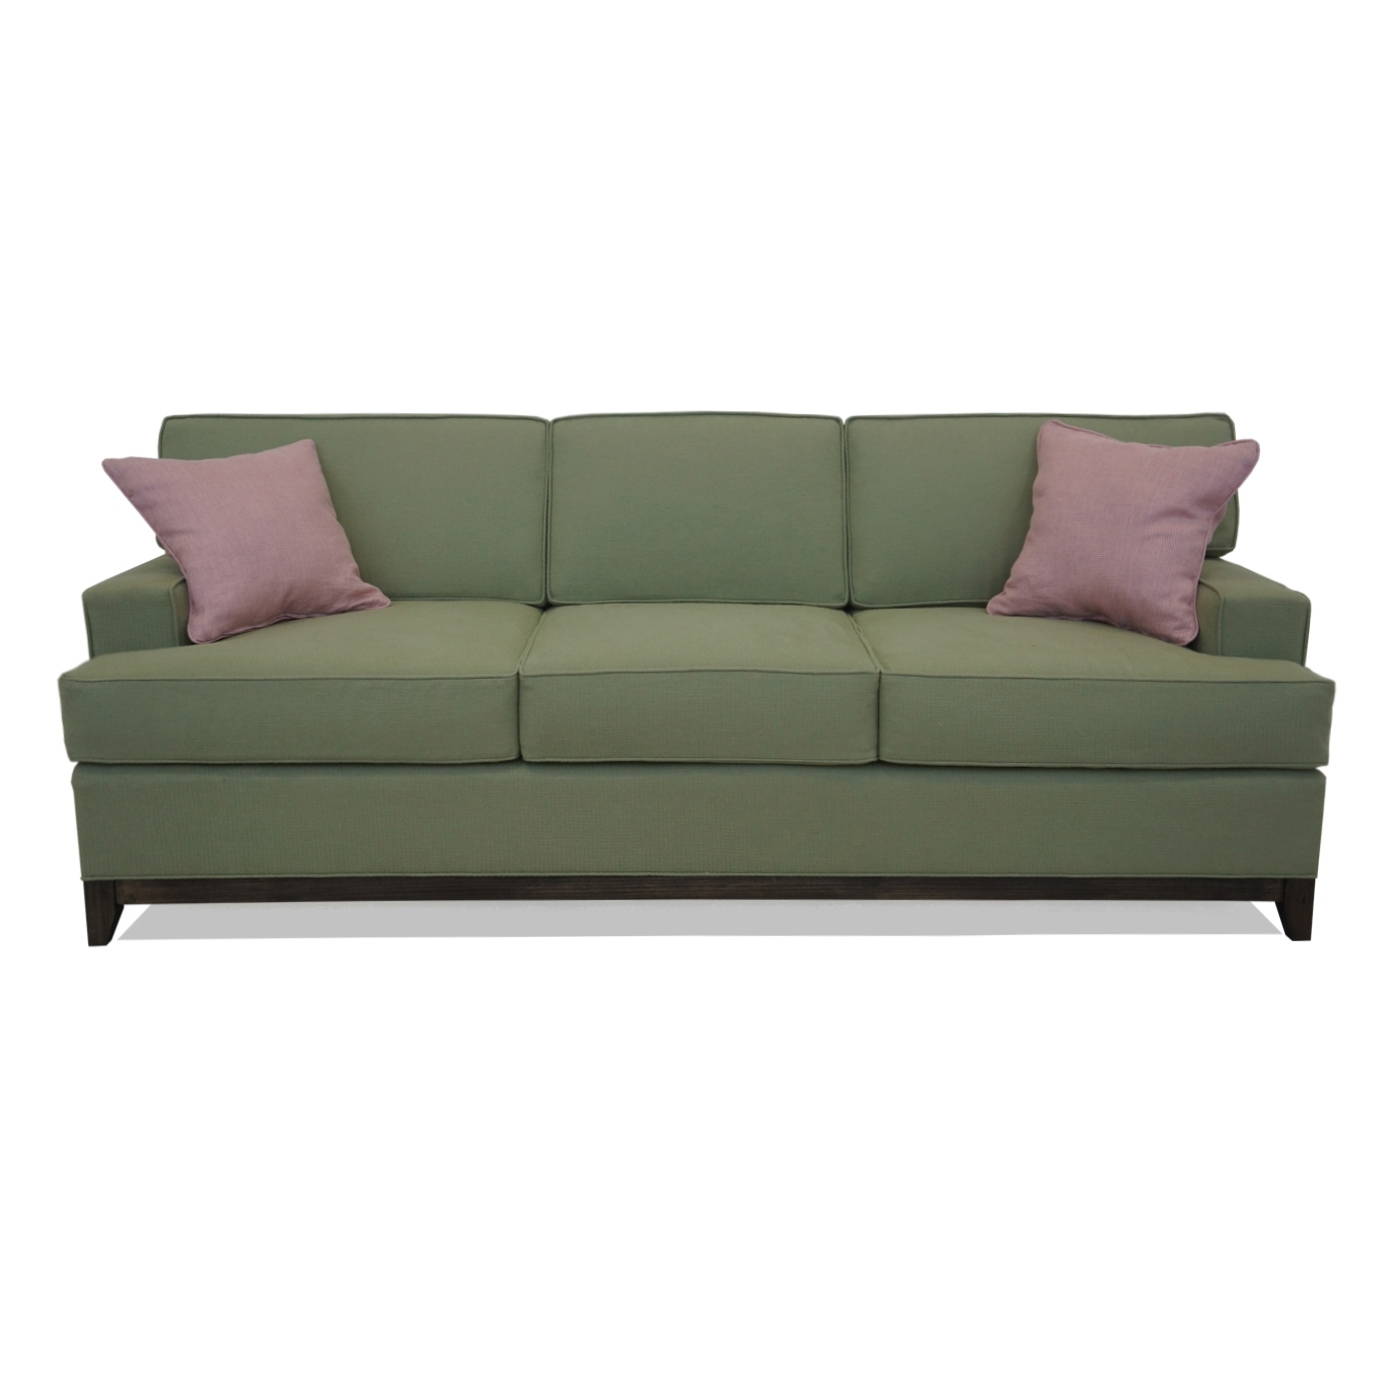 The Best Places To Shop For Eco Friendly Furniture In Well Known Eco Friendly Sectional Sofas (View 11 of 20)